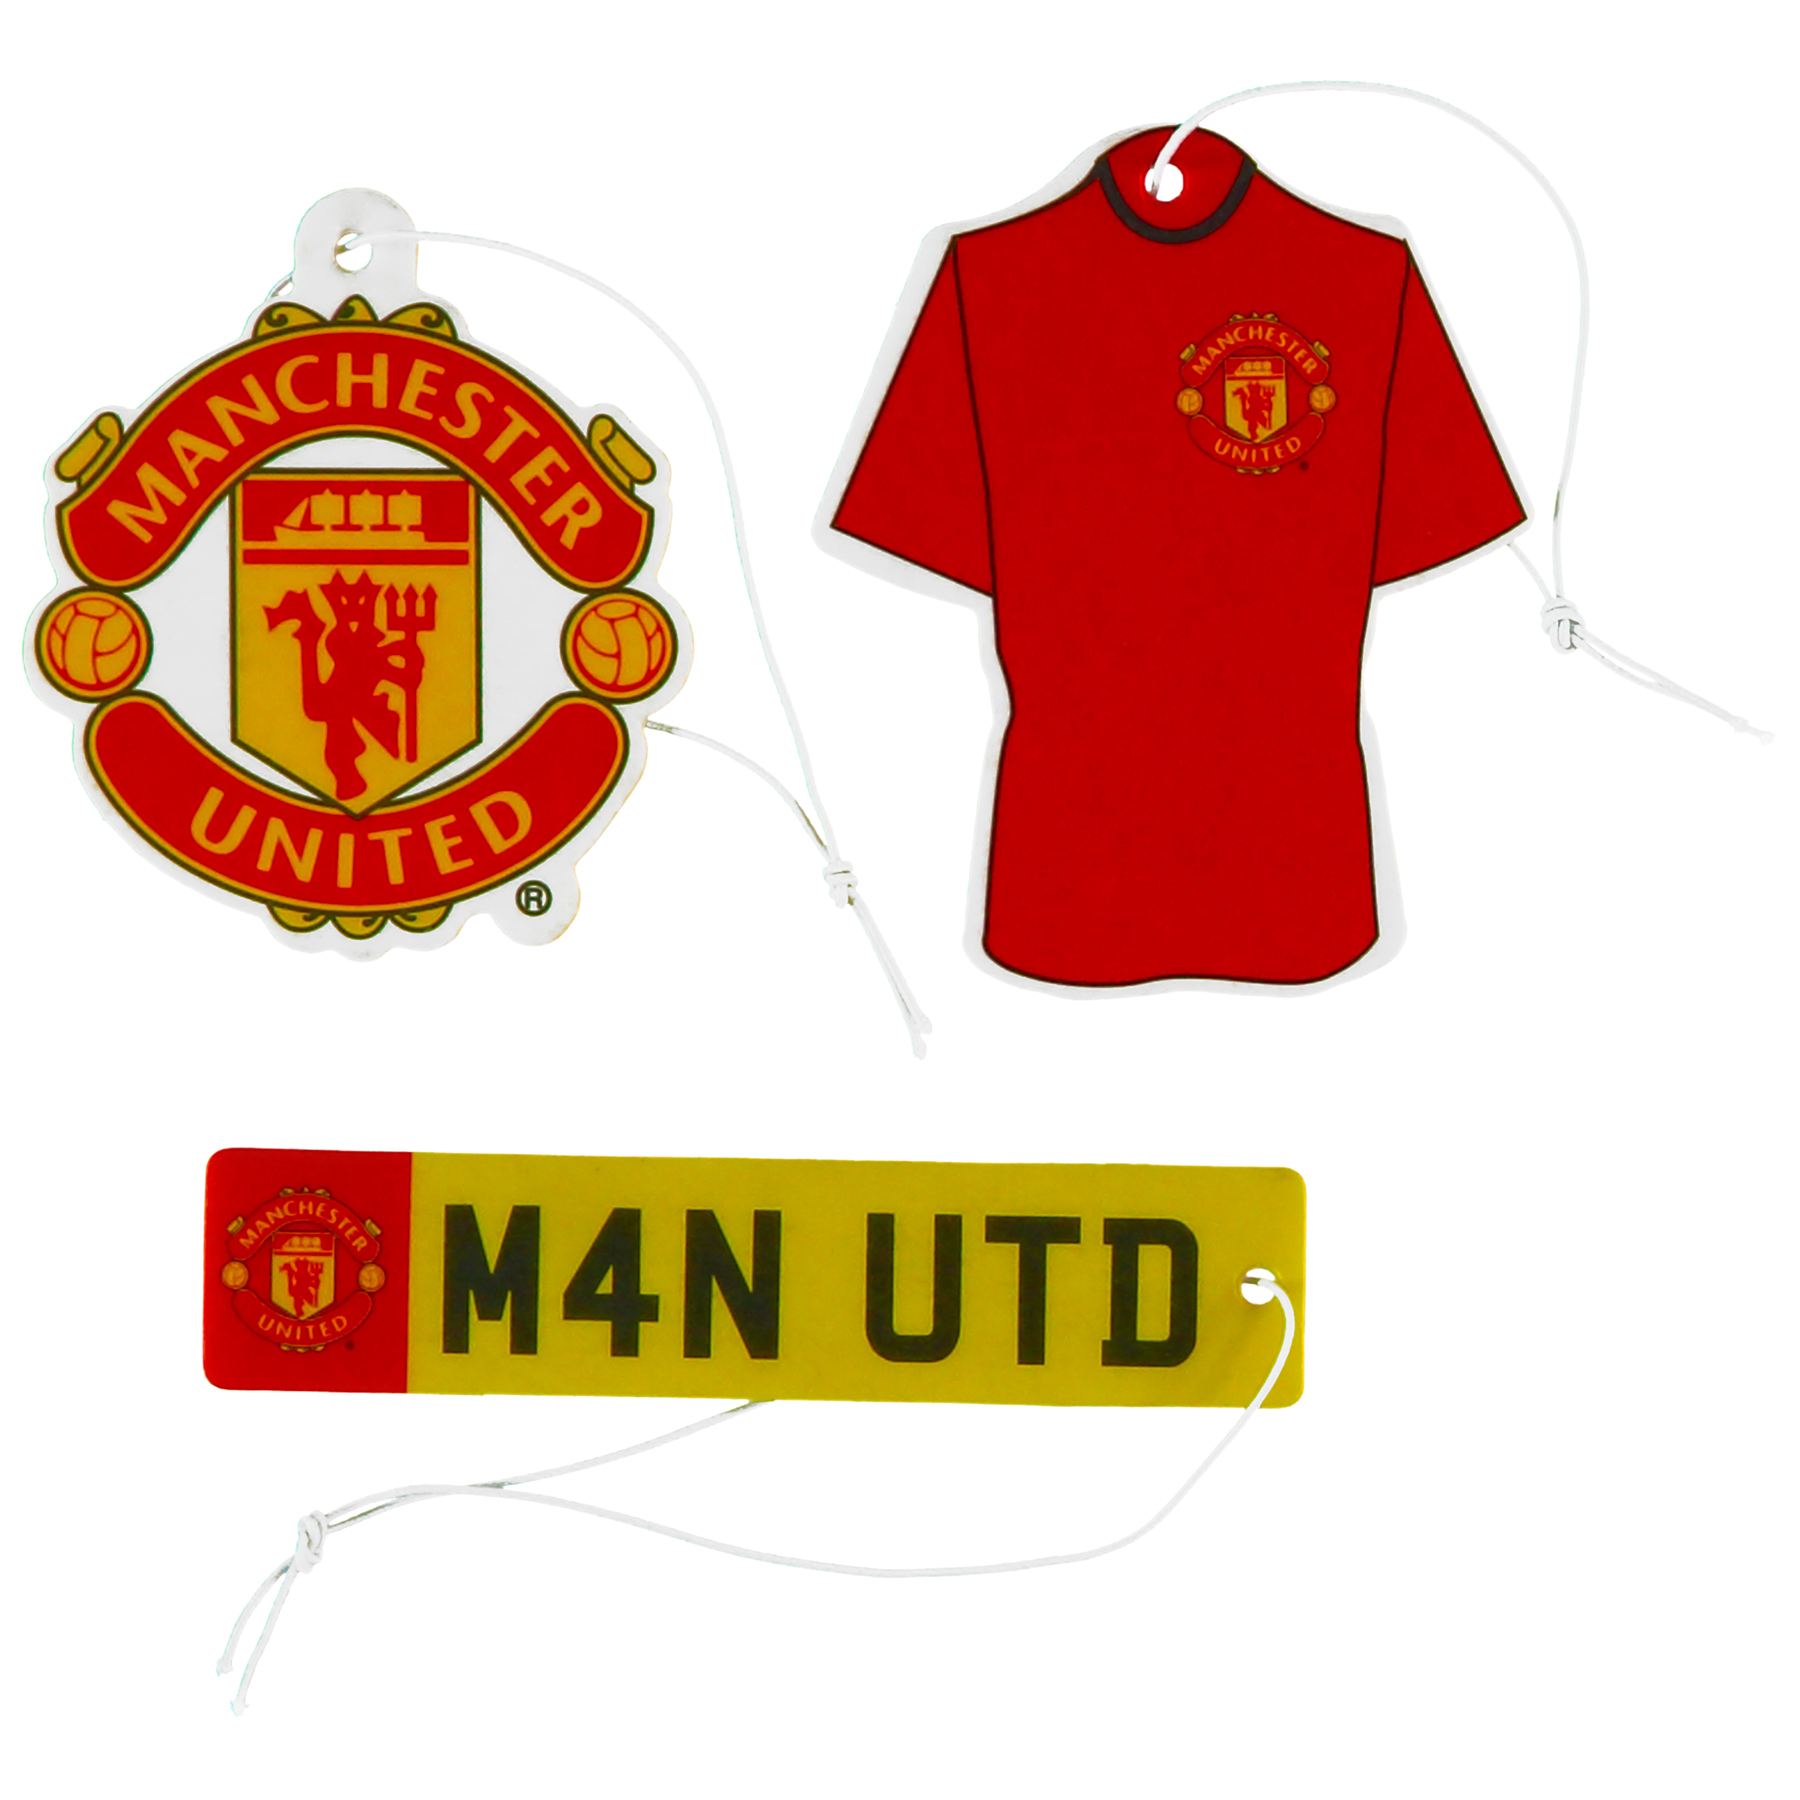 Manchester United Air Fresheners - 3 Pack